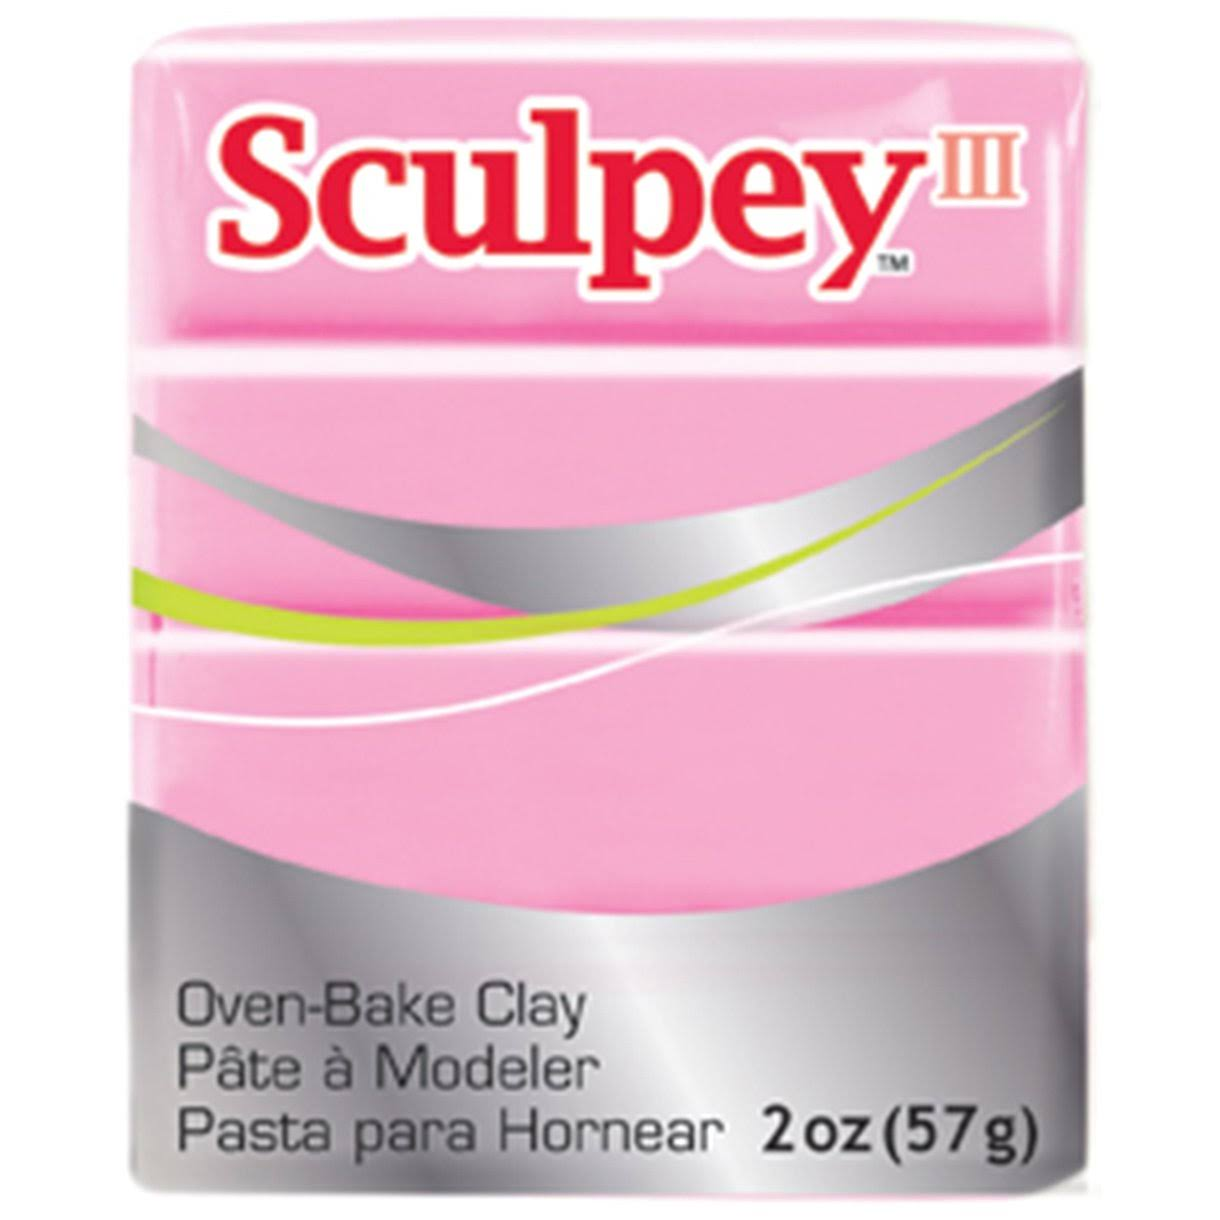 Sculpey III Polymer Clay - Dusty Rose, 2oz